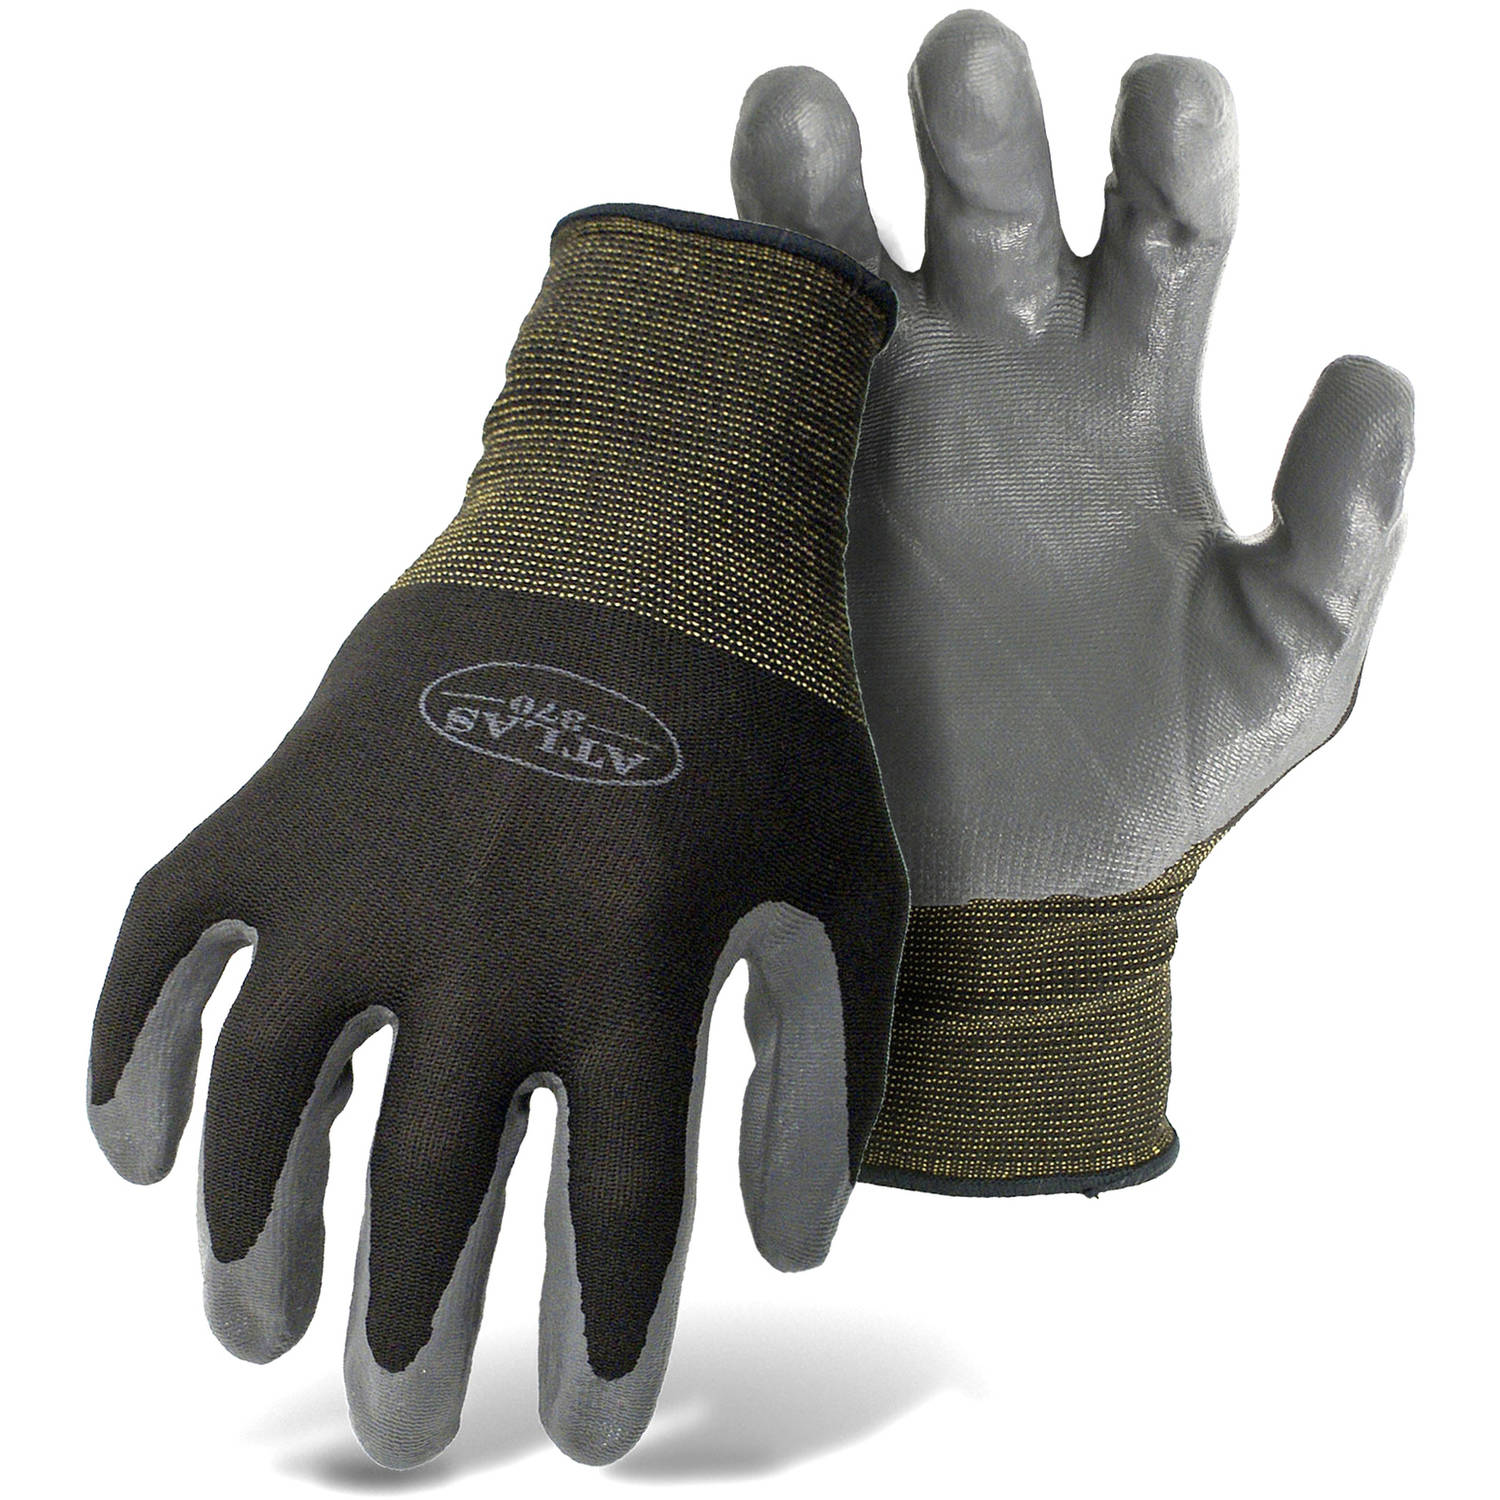 Atlas Glove 8441S Small Atlas-Fit Nitrile Tough Gloves